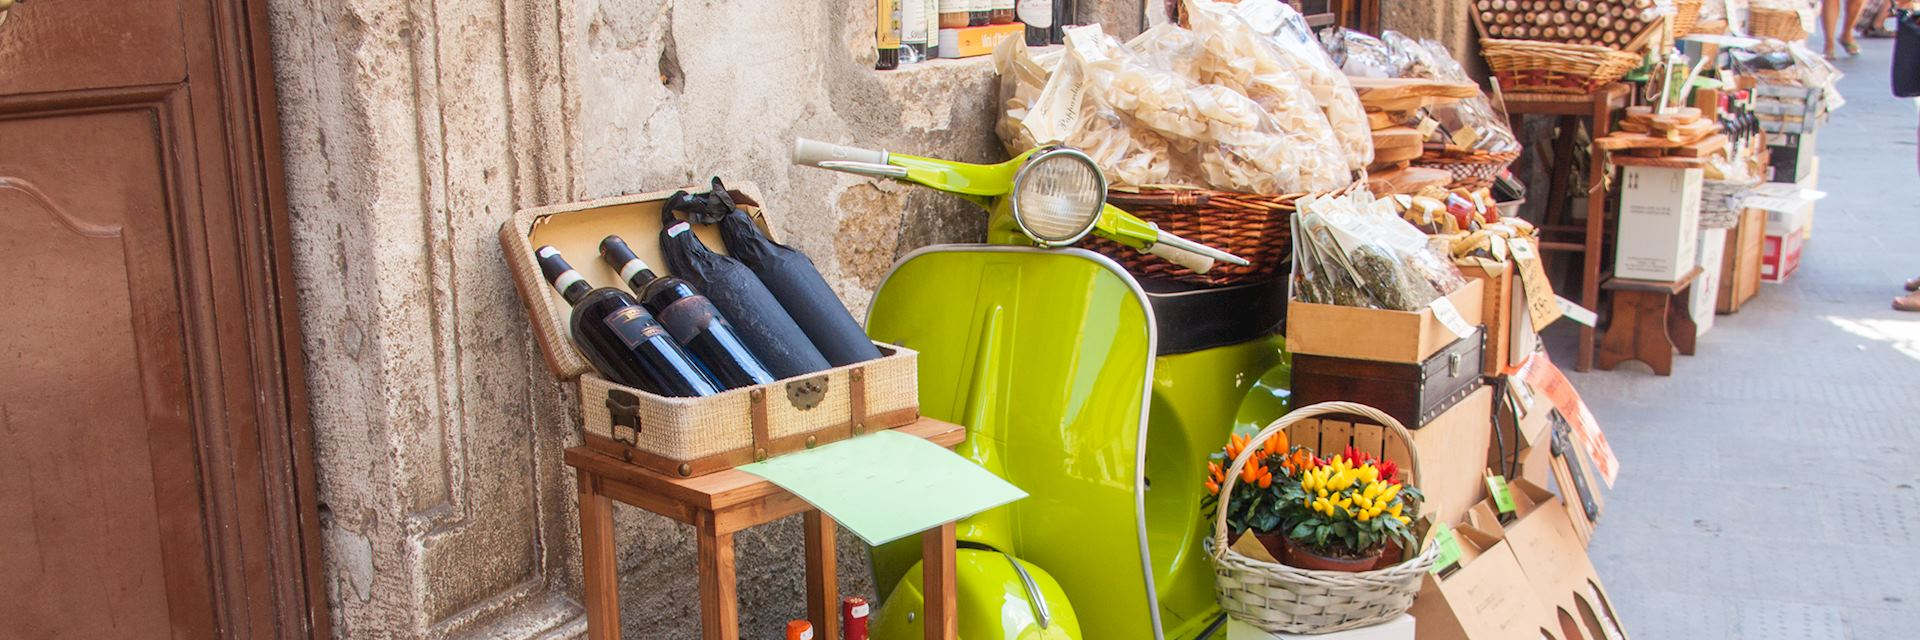 Scooter and local goods, Tuscany, Italy